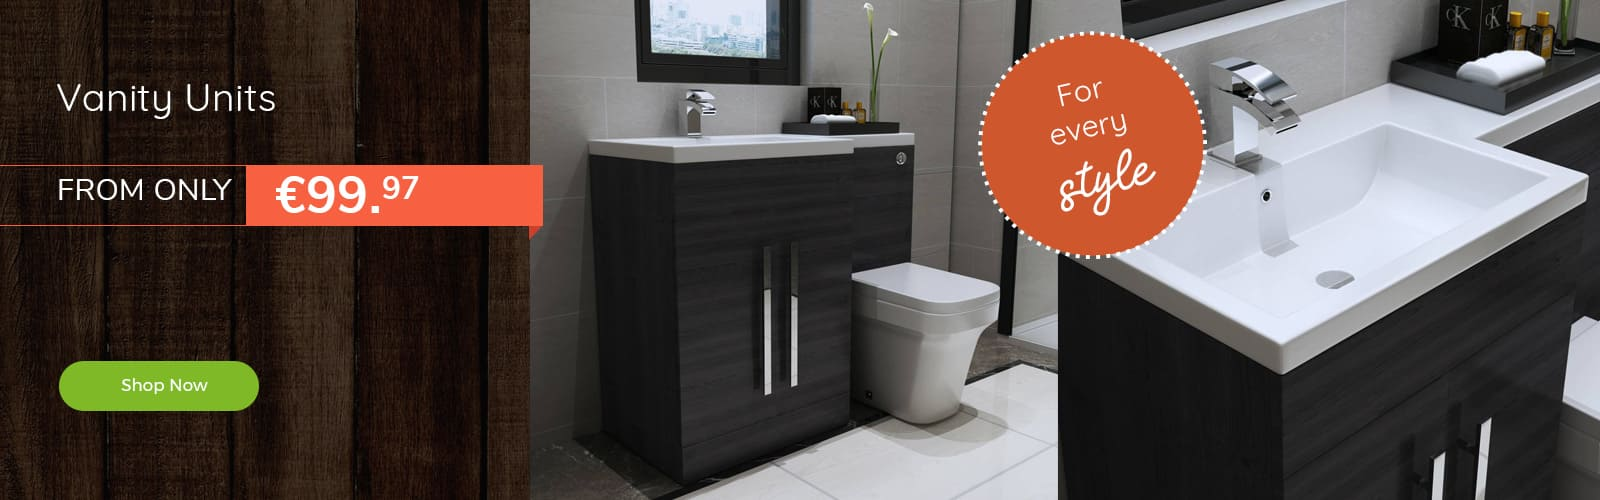 Vanity units from €99.97